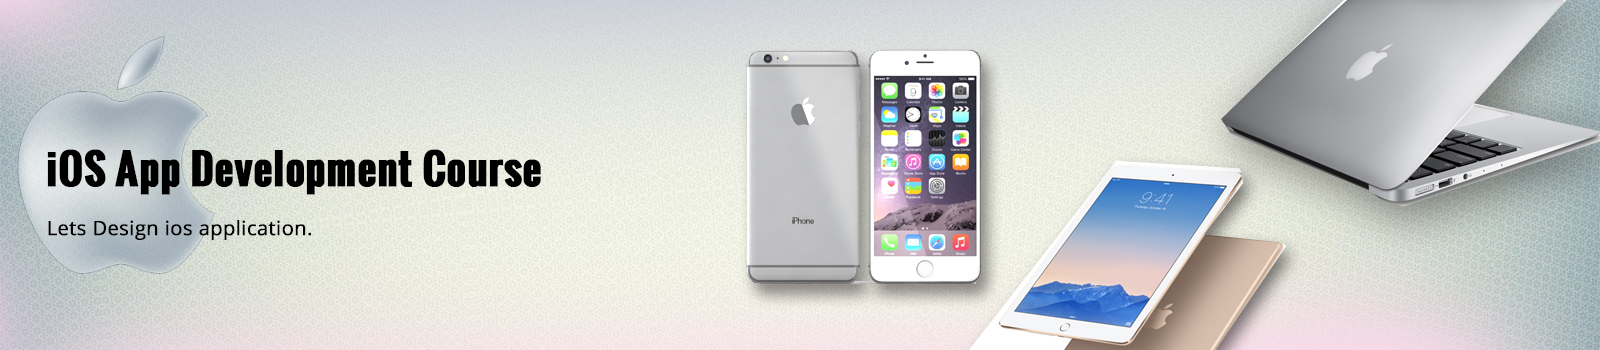 iPhone App (IOS) Development Course in Thane  Enroll Now |